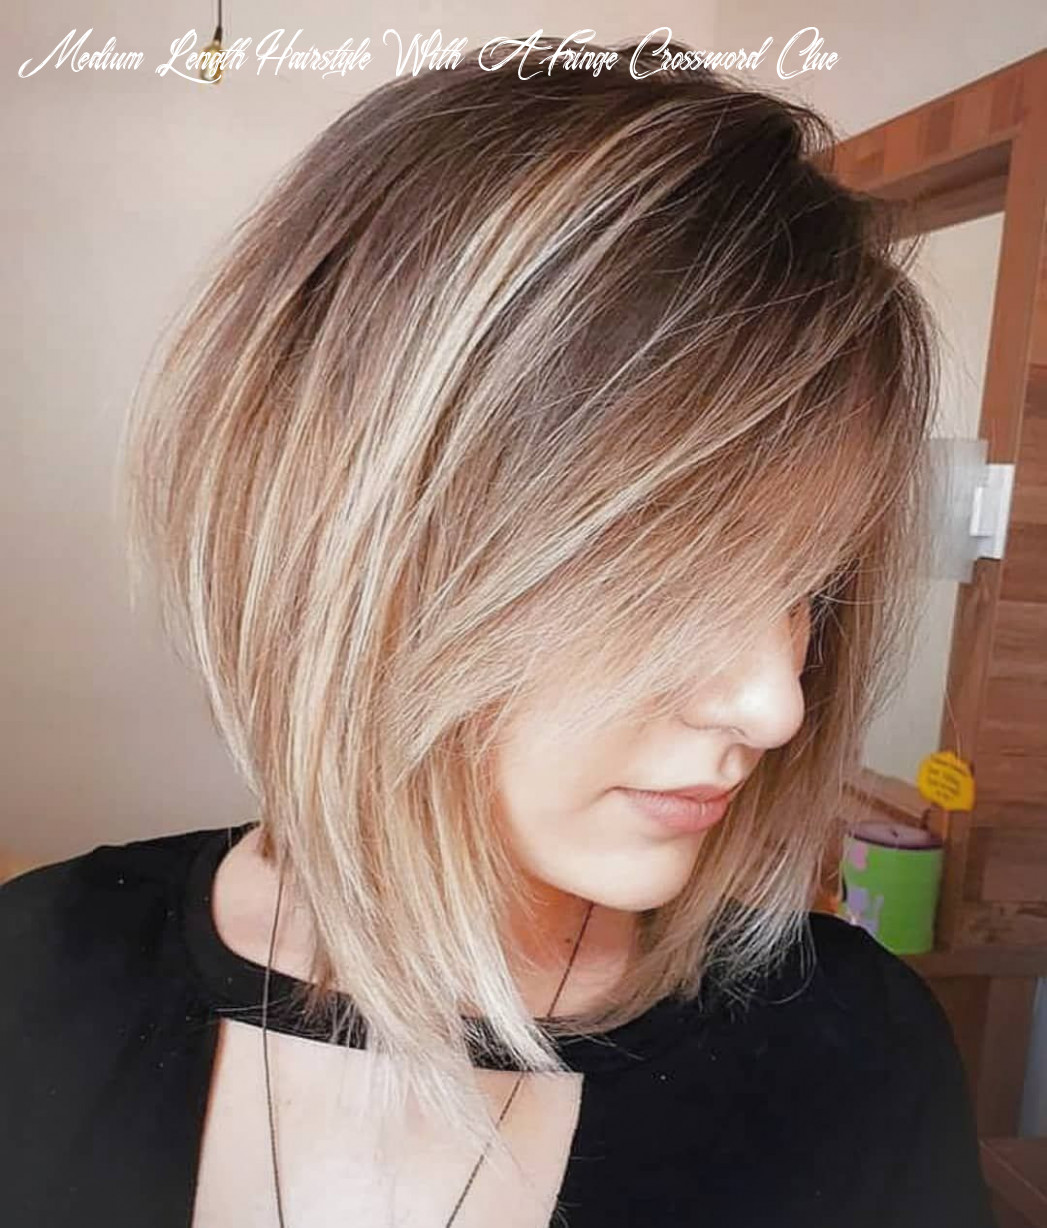 Shoulder lengths hairstyles unique hairstyles 12 medium length